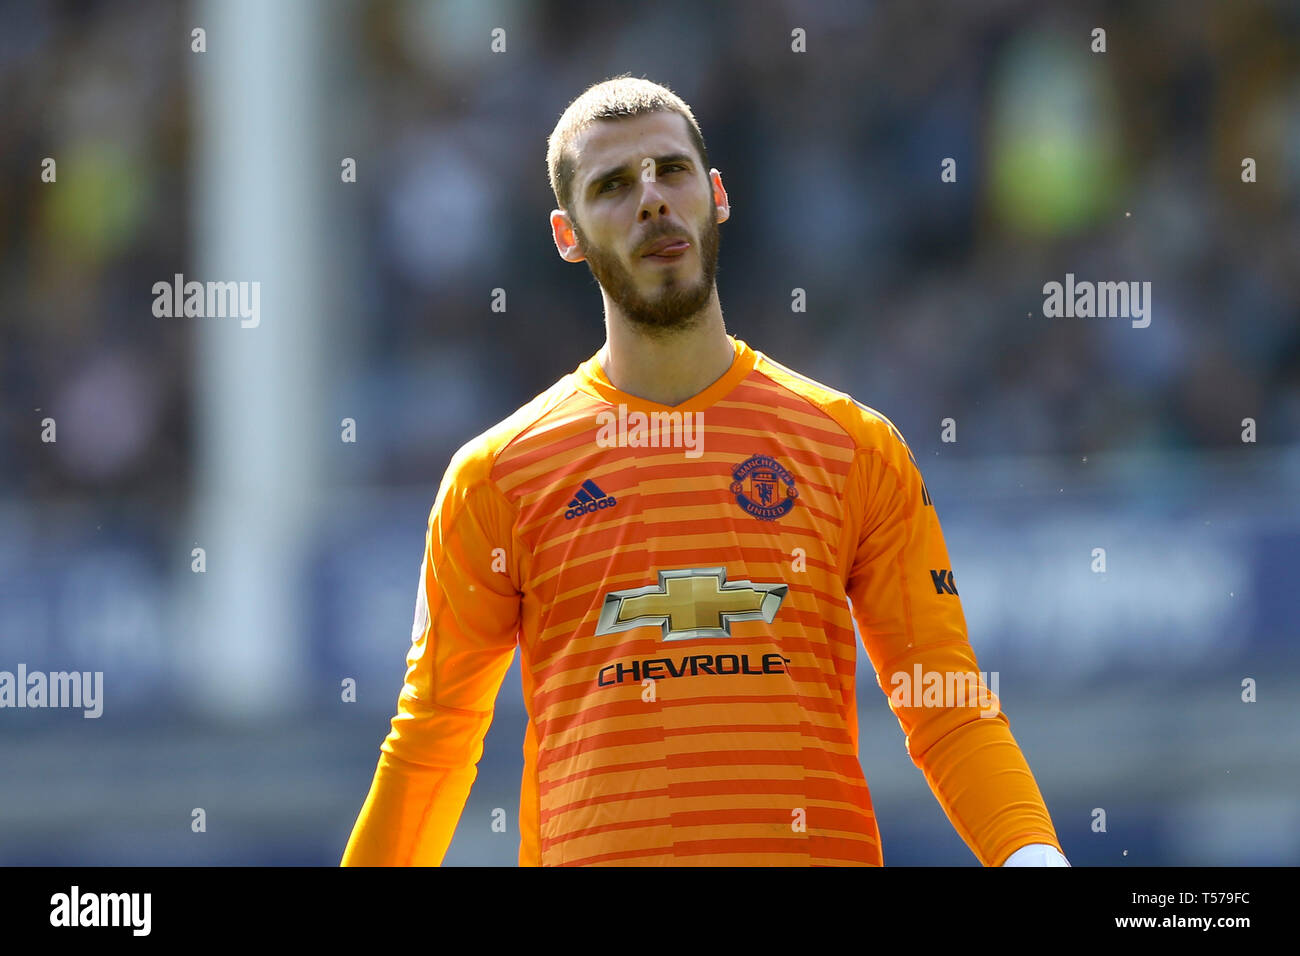 Manchester United Goalkeeper High Resolution Stock Photography And Images Alamy